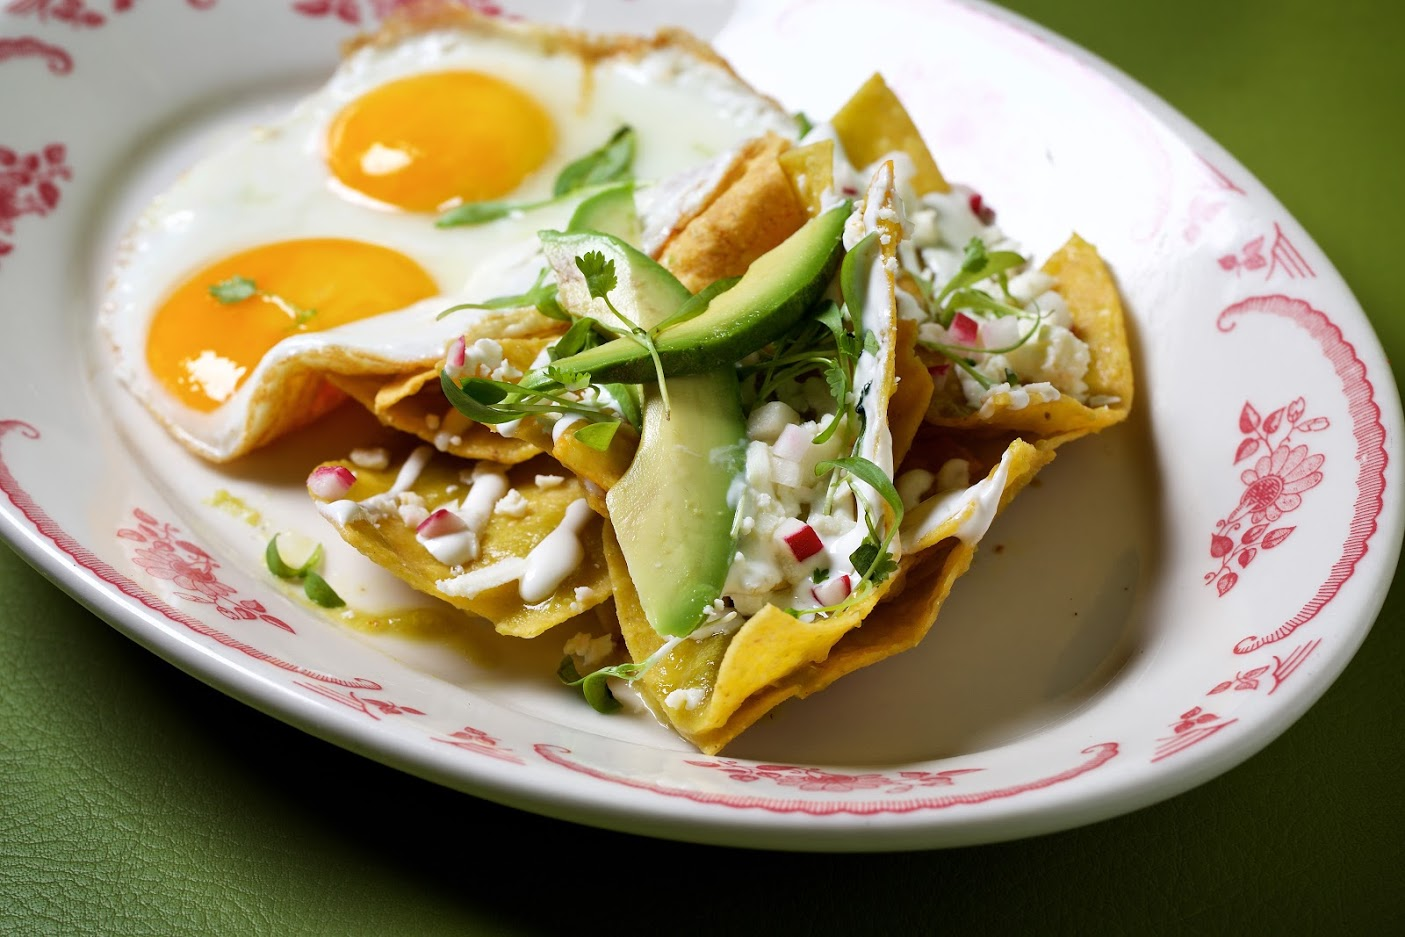 El Bebe has just launched a Mexican-inspired brunch menu. (Image: Courtesy El Bebe)